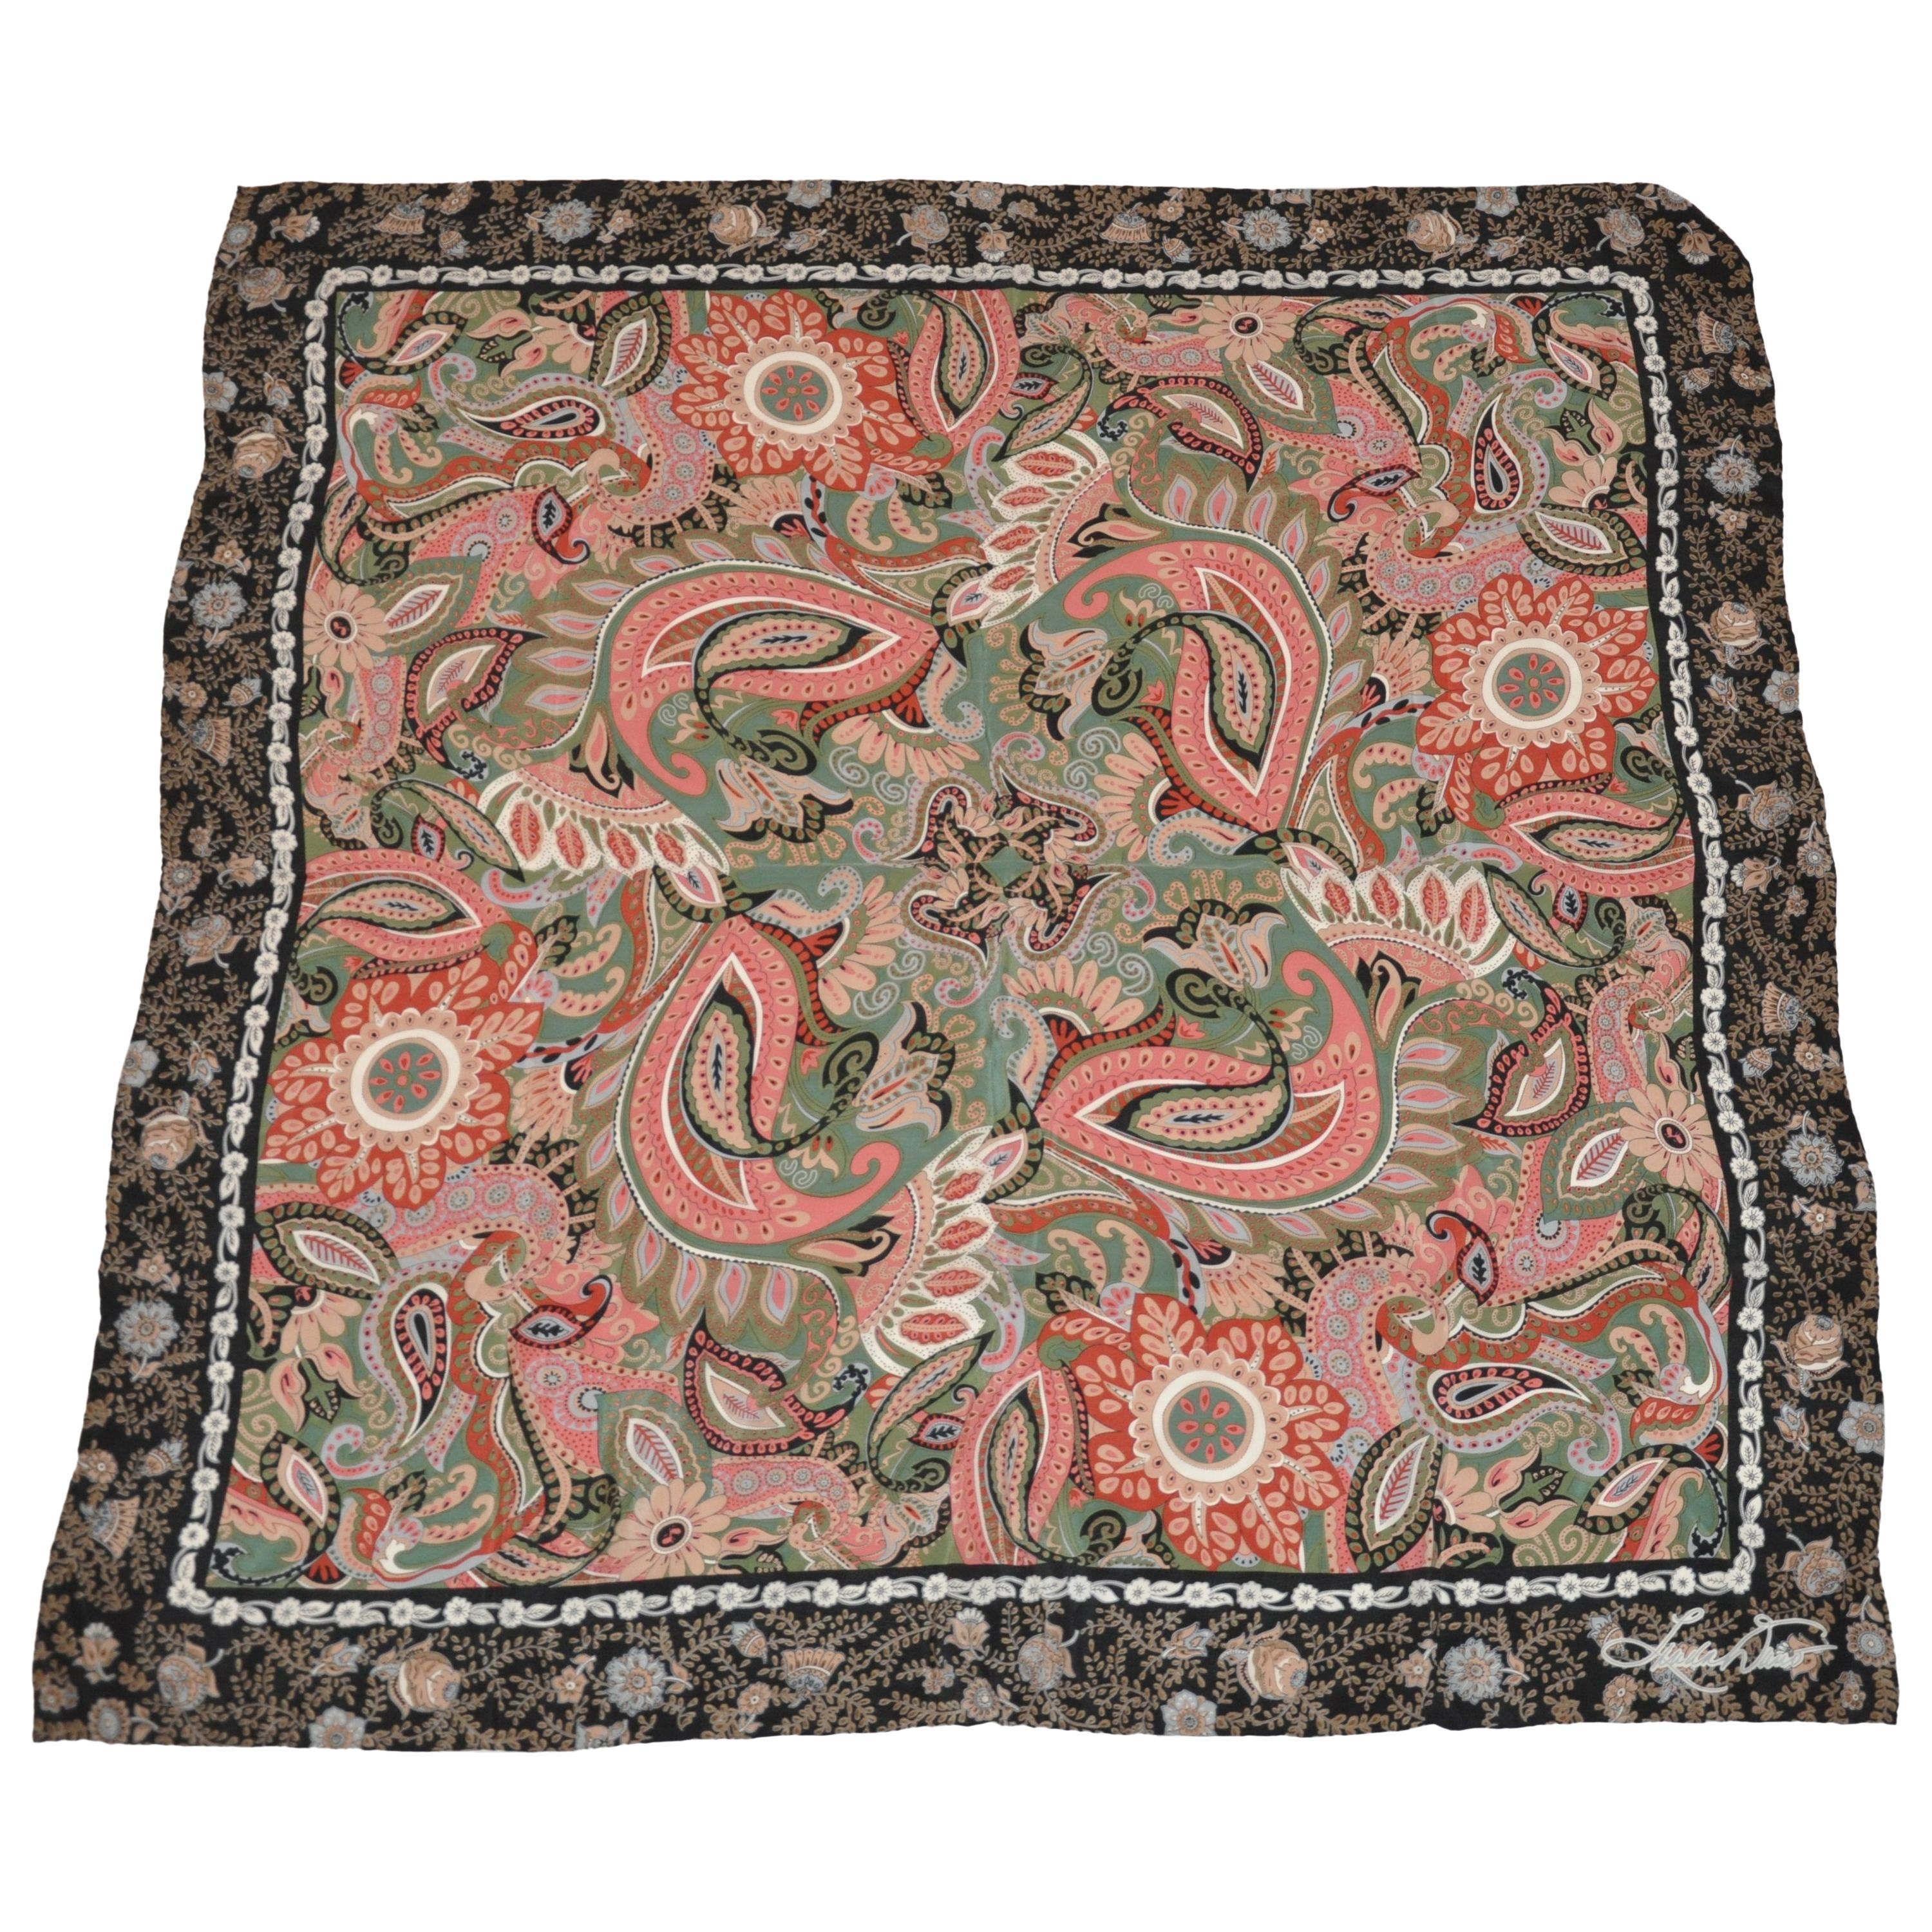 Huge Linda Duno Midnight Blue Floral Border with Whimsical Florals Silk Scarf